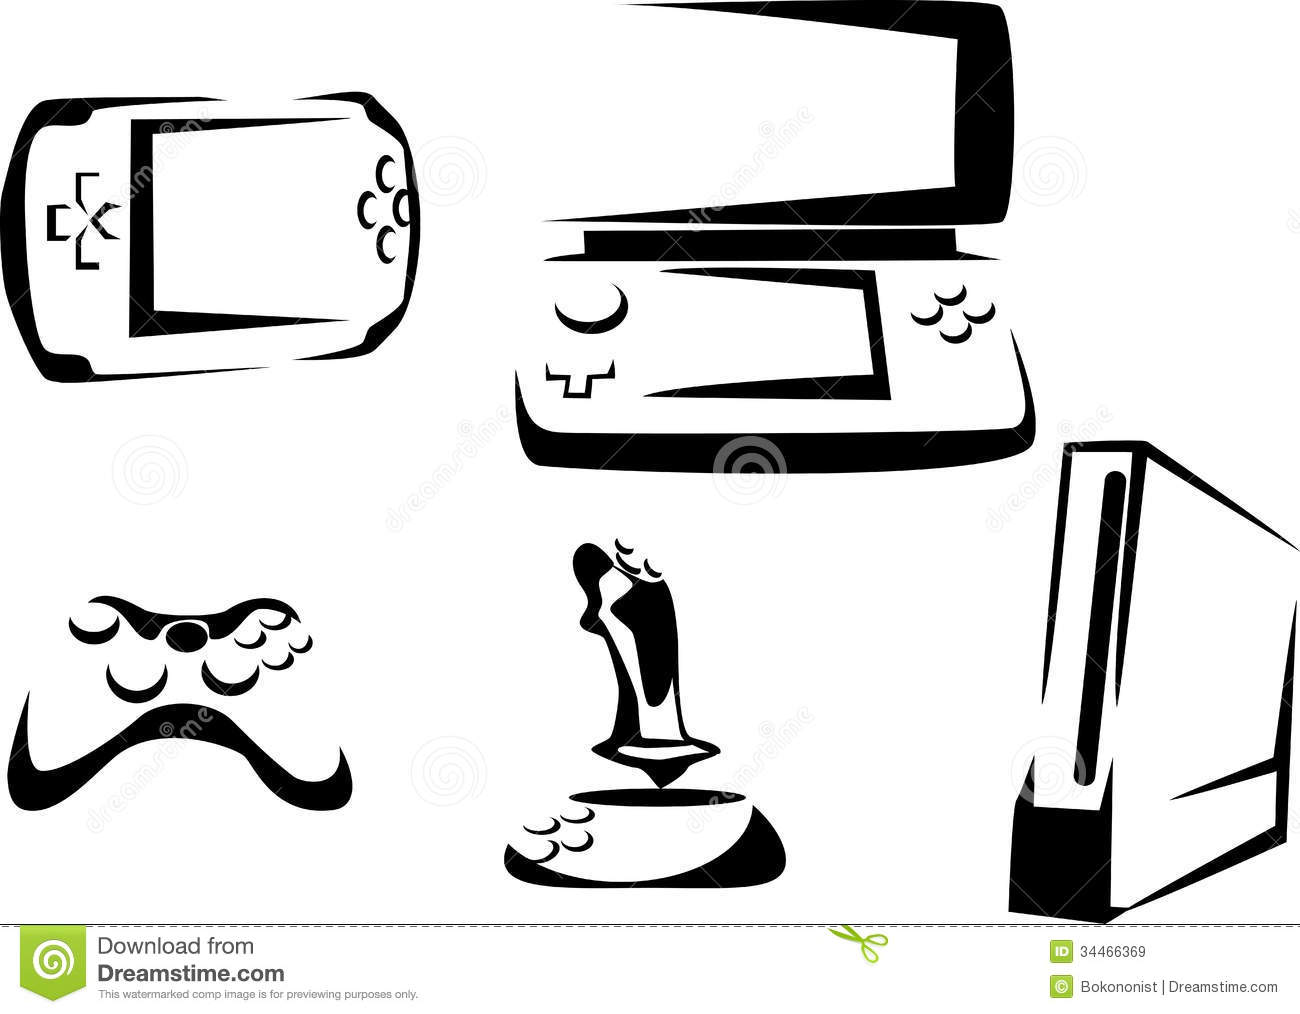 Console stock vector. Image of game, playstation